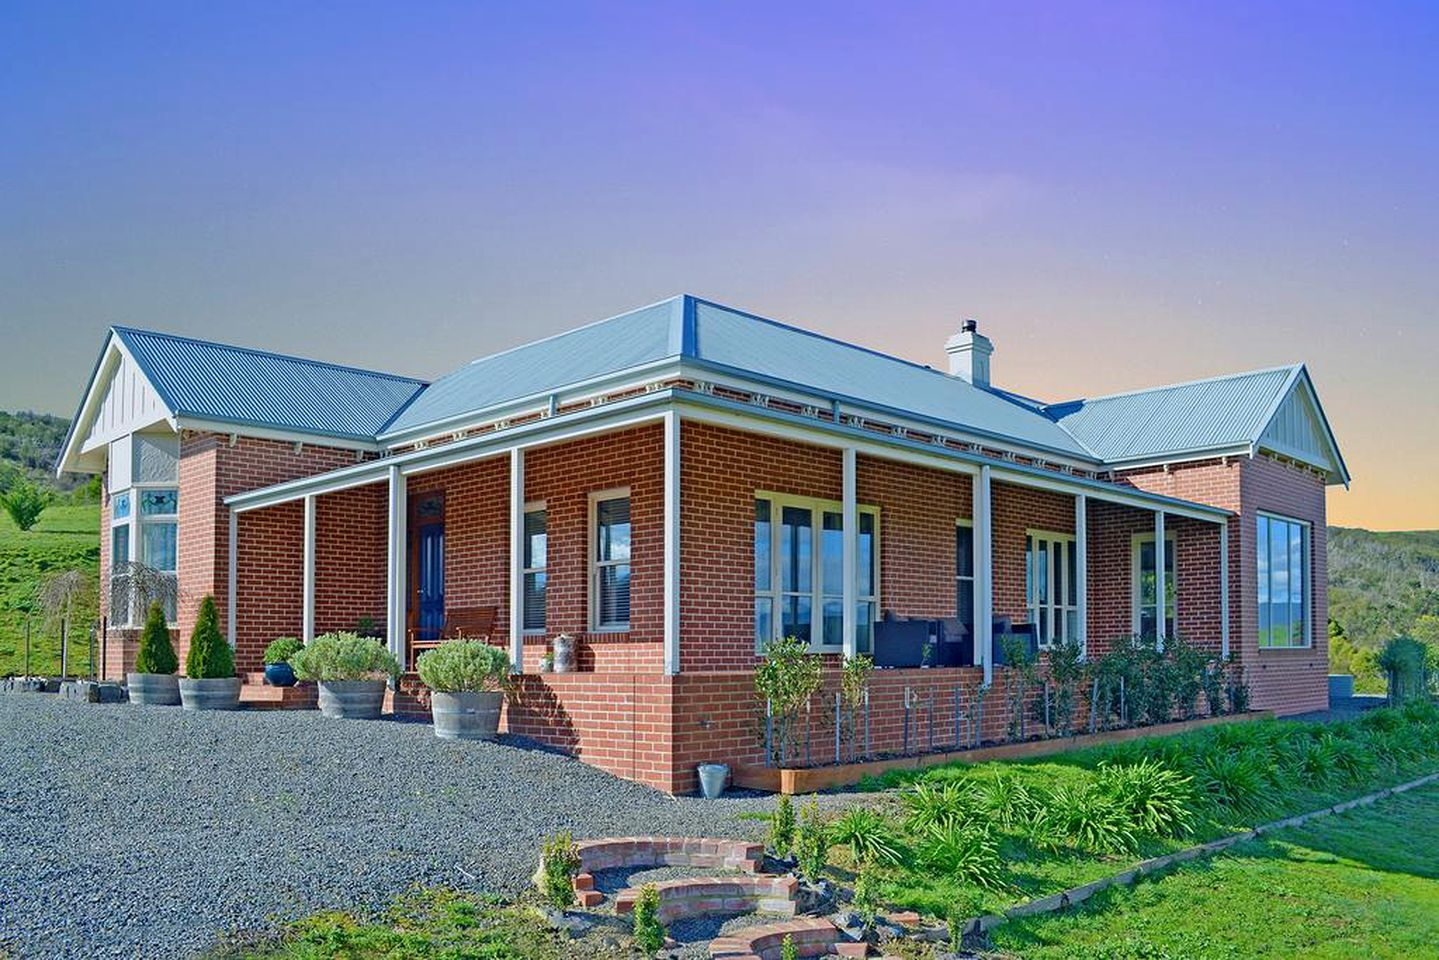 Cottages (Glenburn, Victoria, Australia)